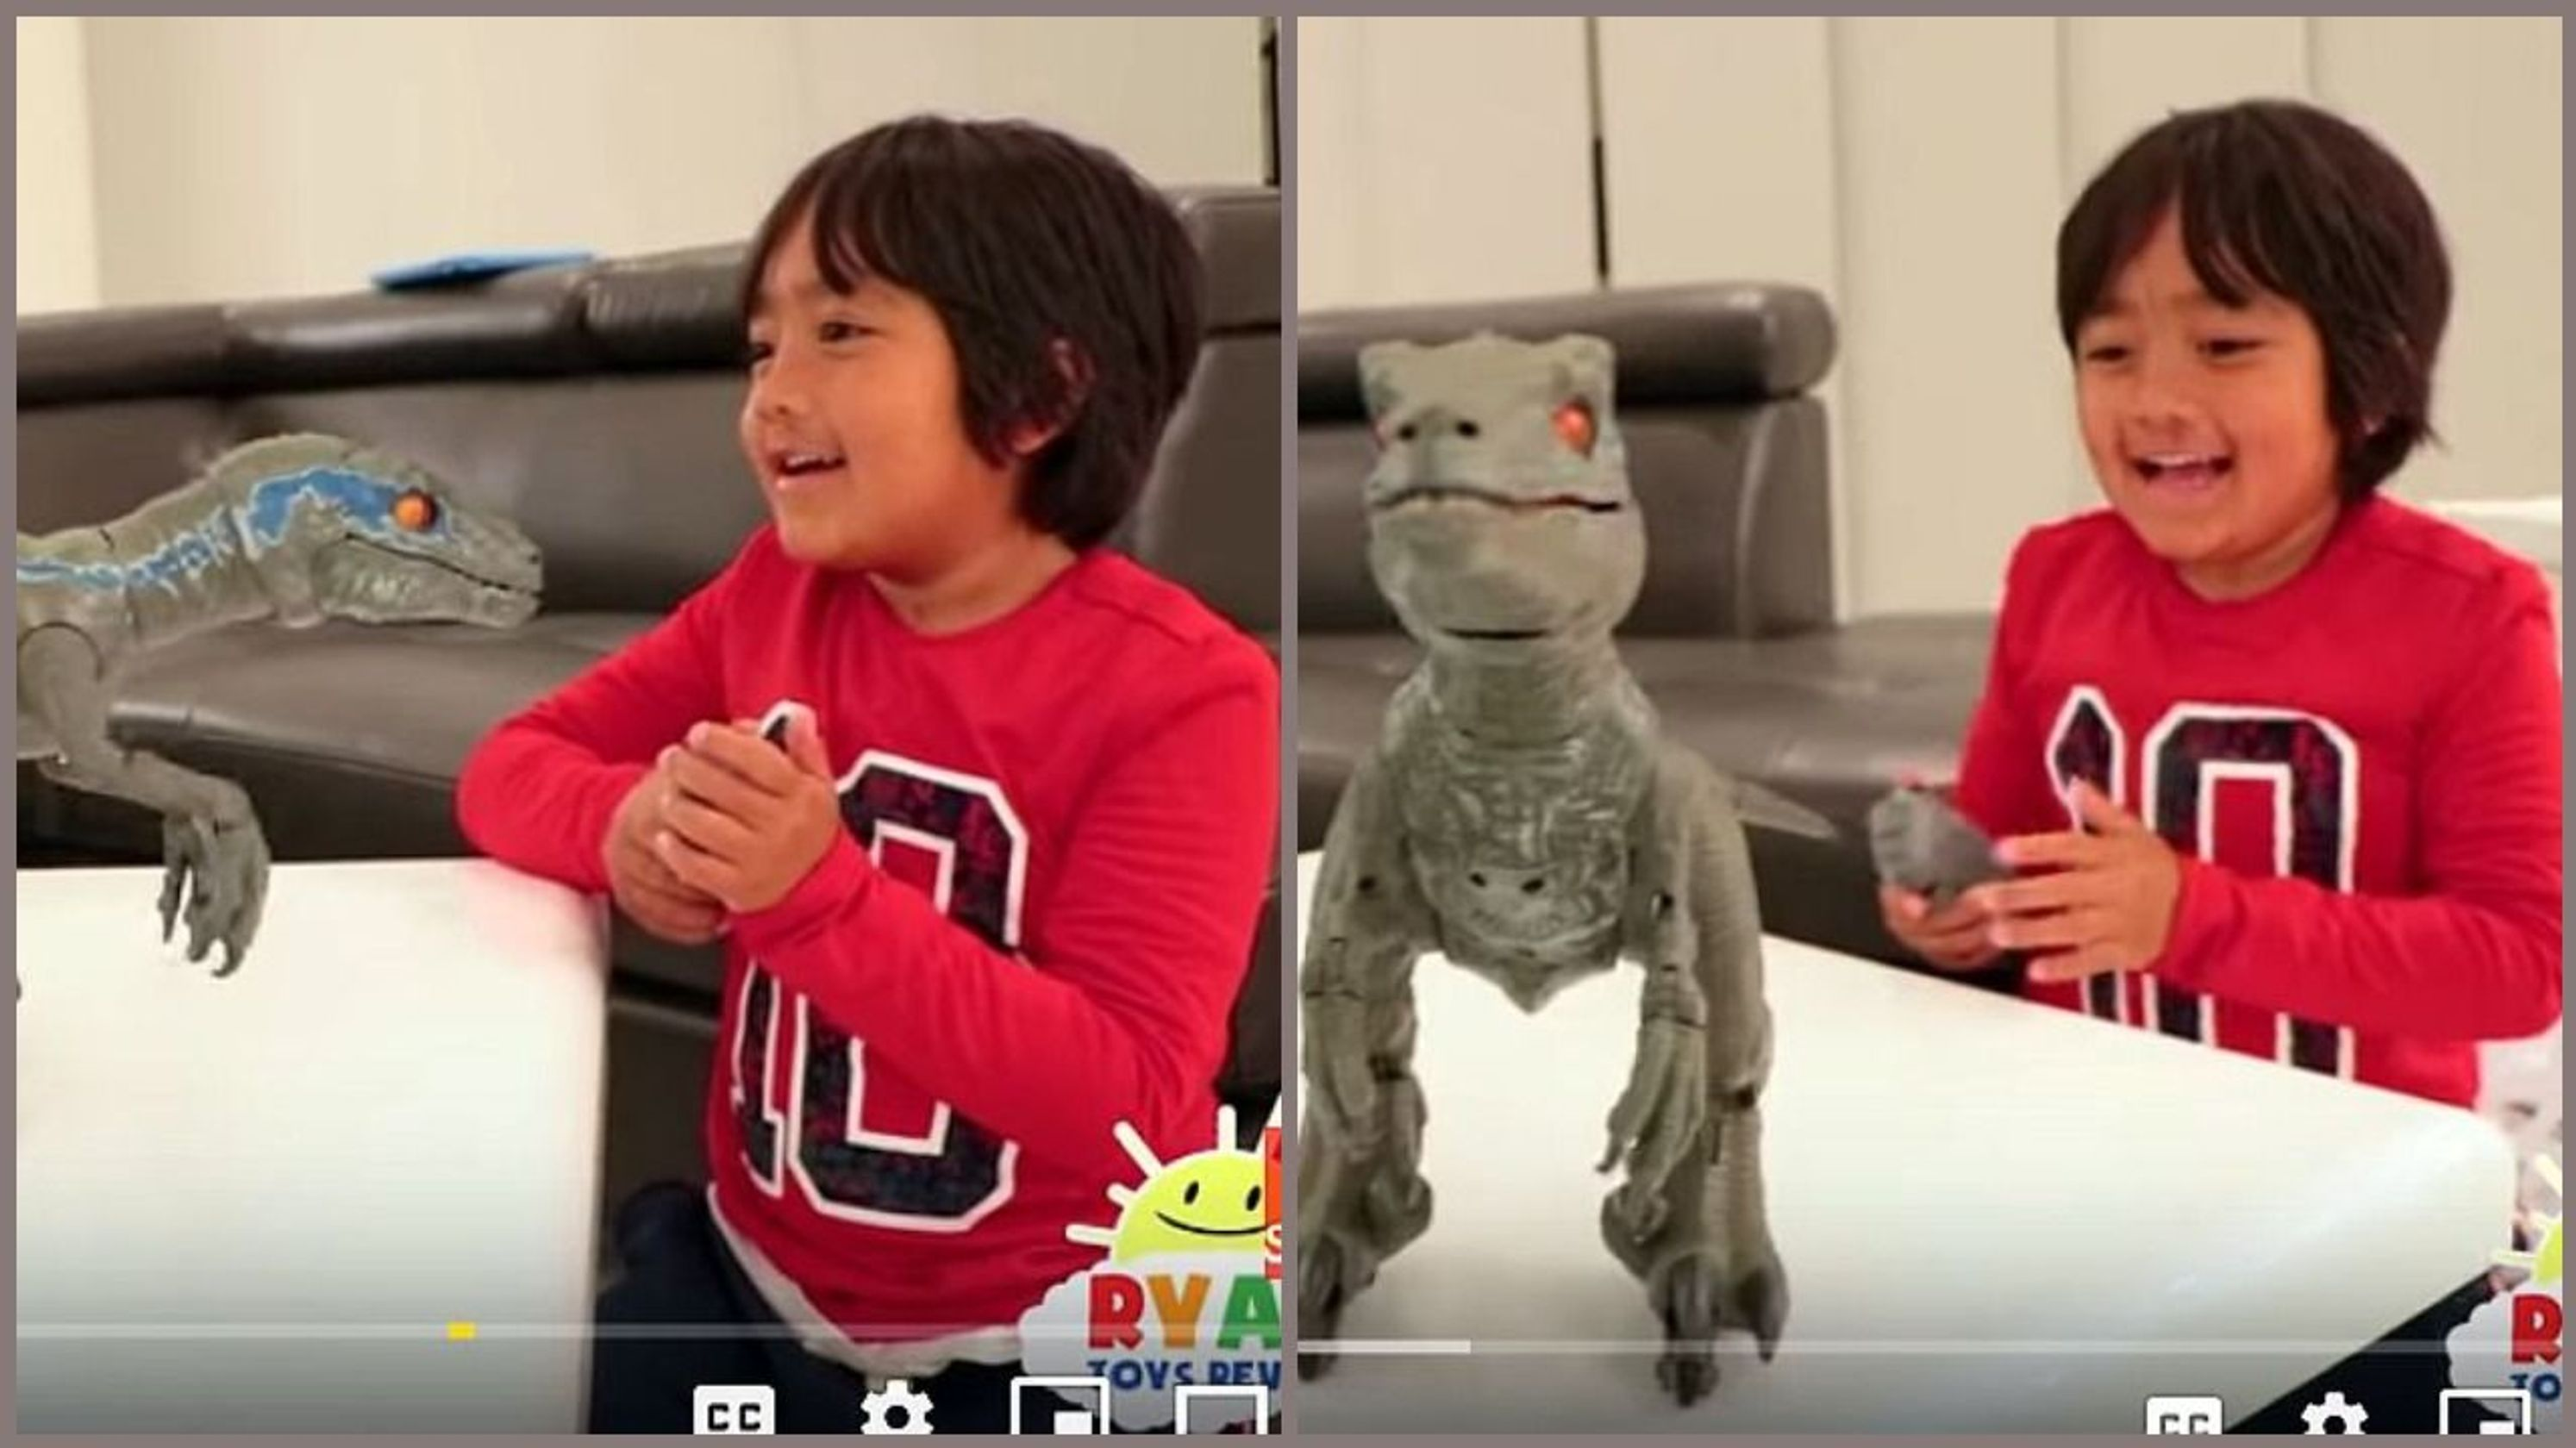 YouTube's top earner is a 7-year-old who made $22 million playing with toys